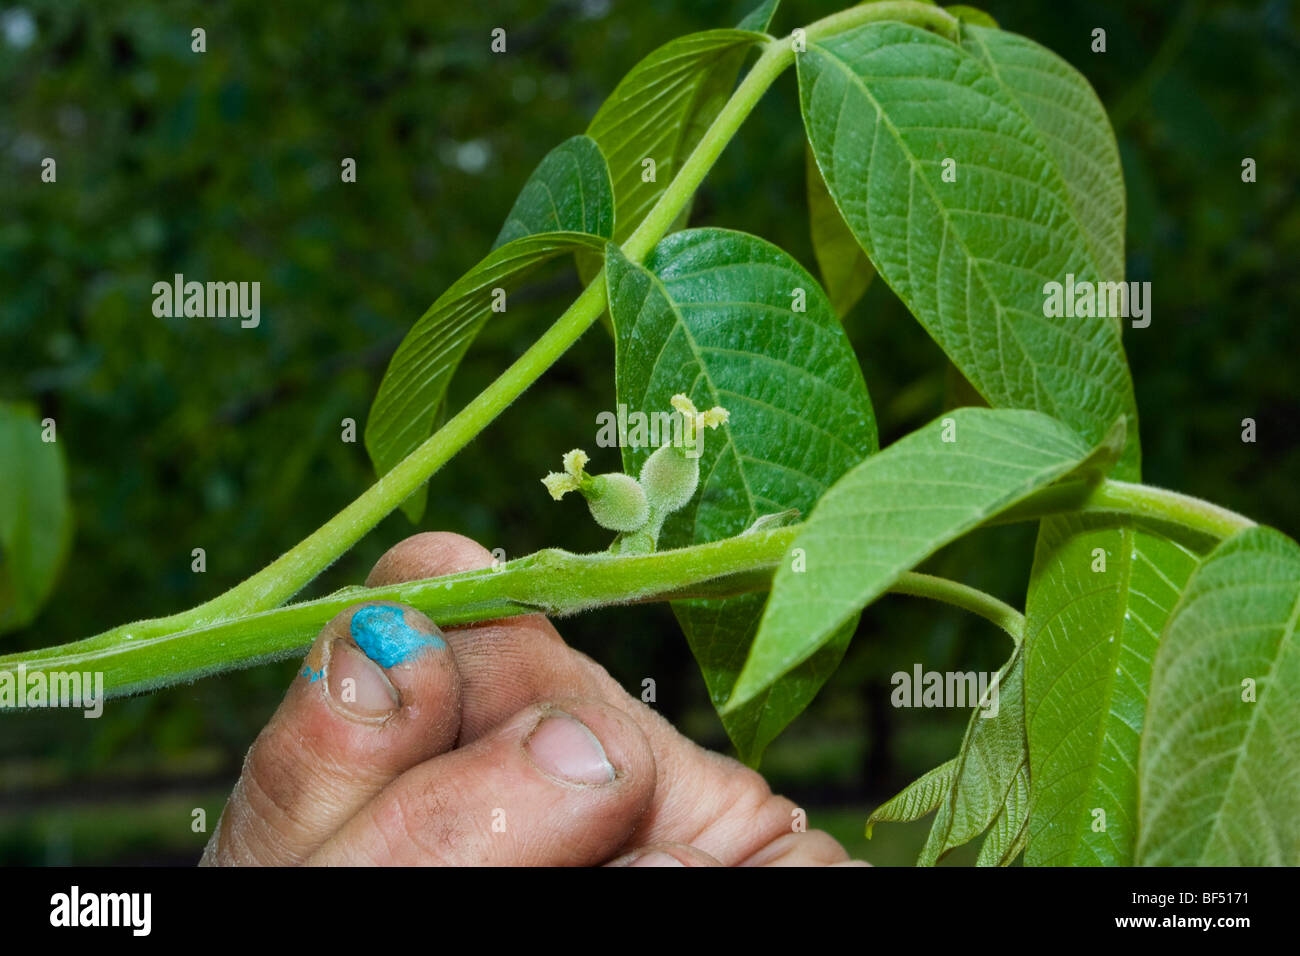 Agriculture - A growers hand holds a walnut tree branch showing tiny immature walnuts / near Red Bluff, California, - Stock Image